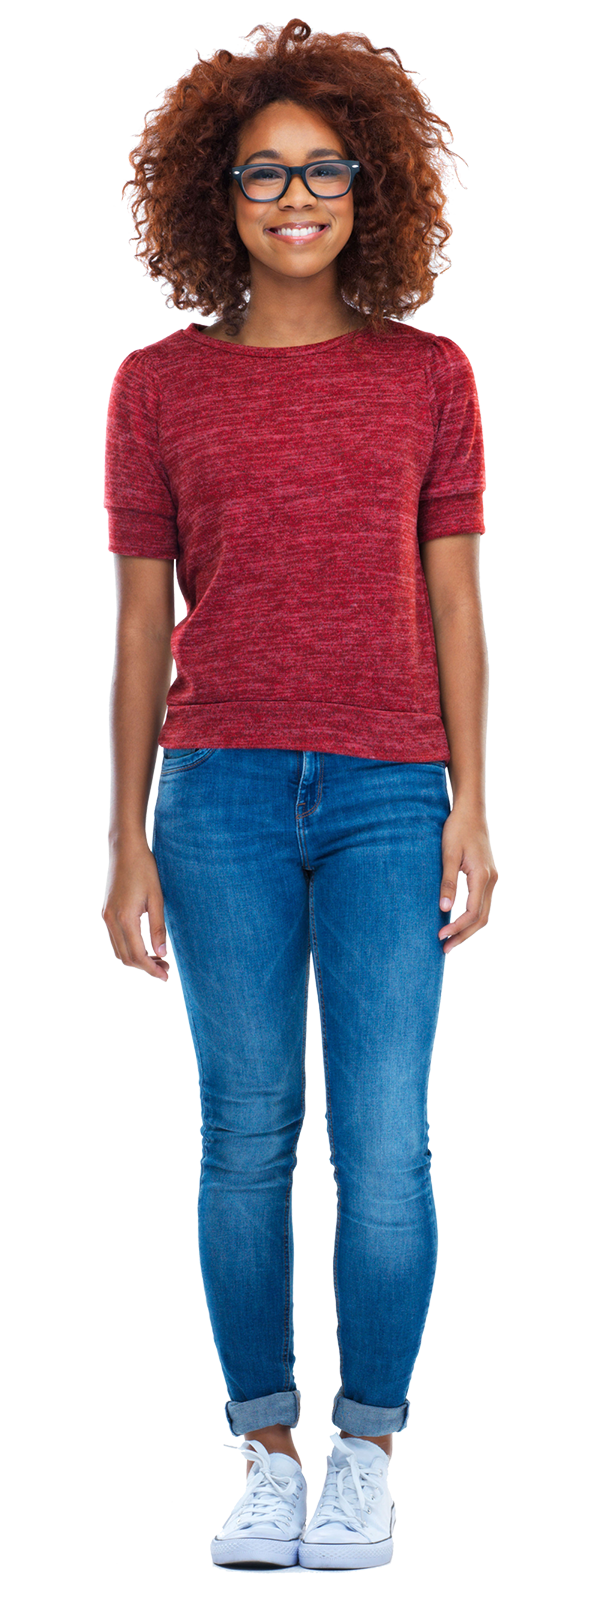 Person wearing red top and blue jeans